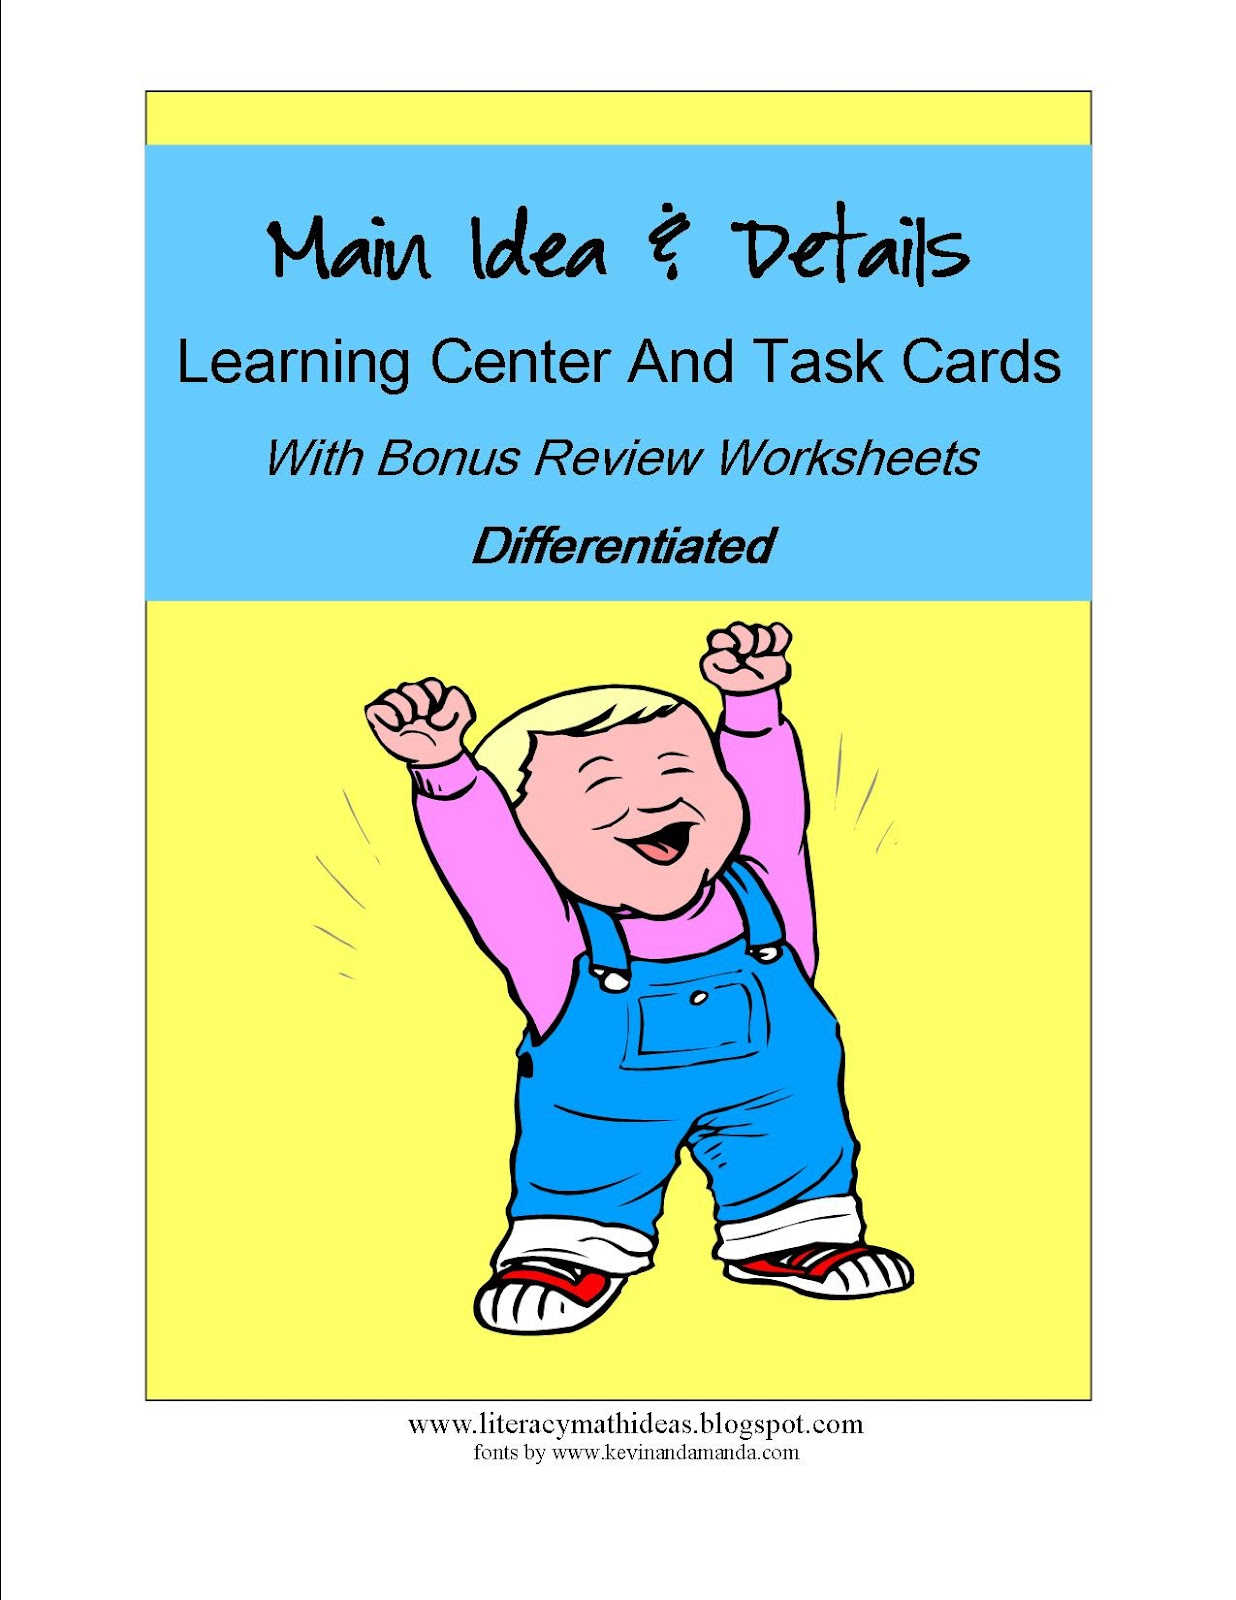 Literacy Amp Math Ideas Differentiated Main Idea Resources